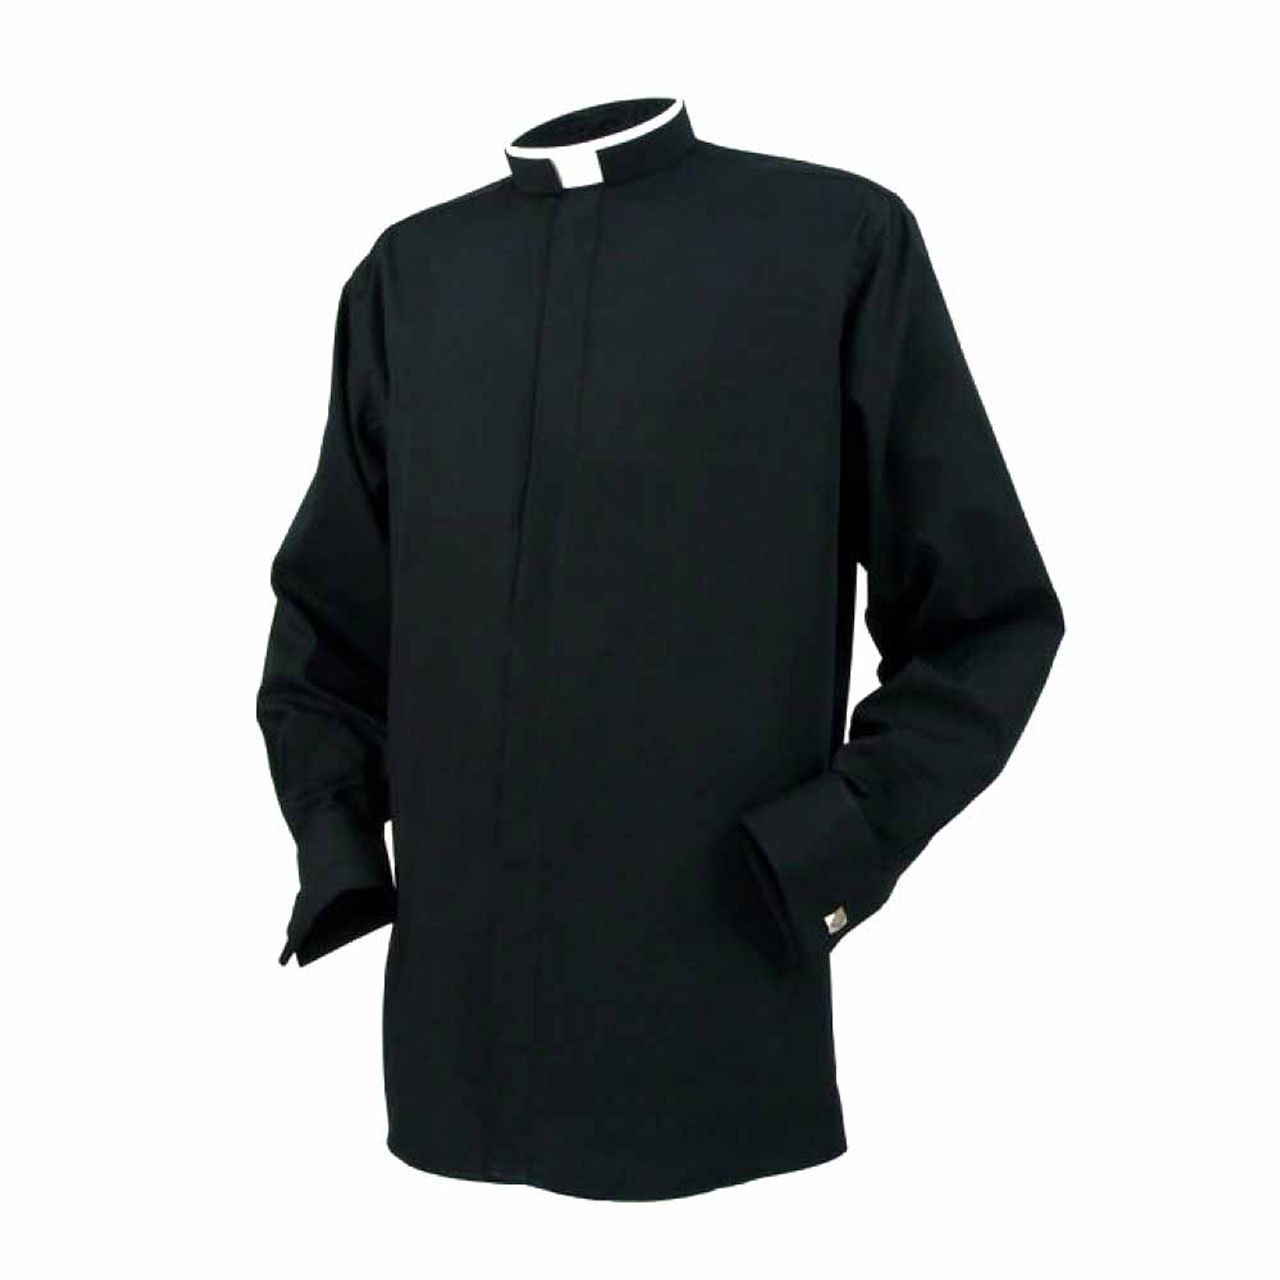 Reliant Tonsure Clergy Shirt 19x33/34